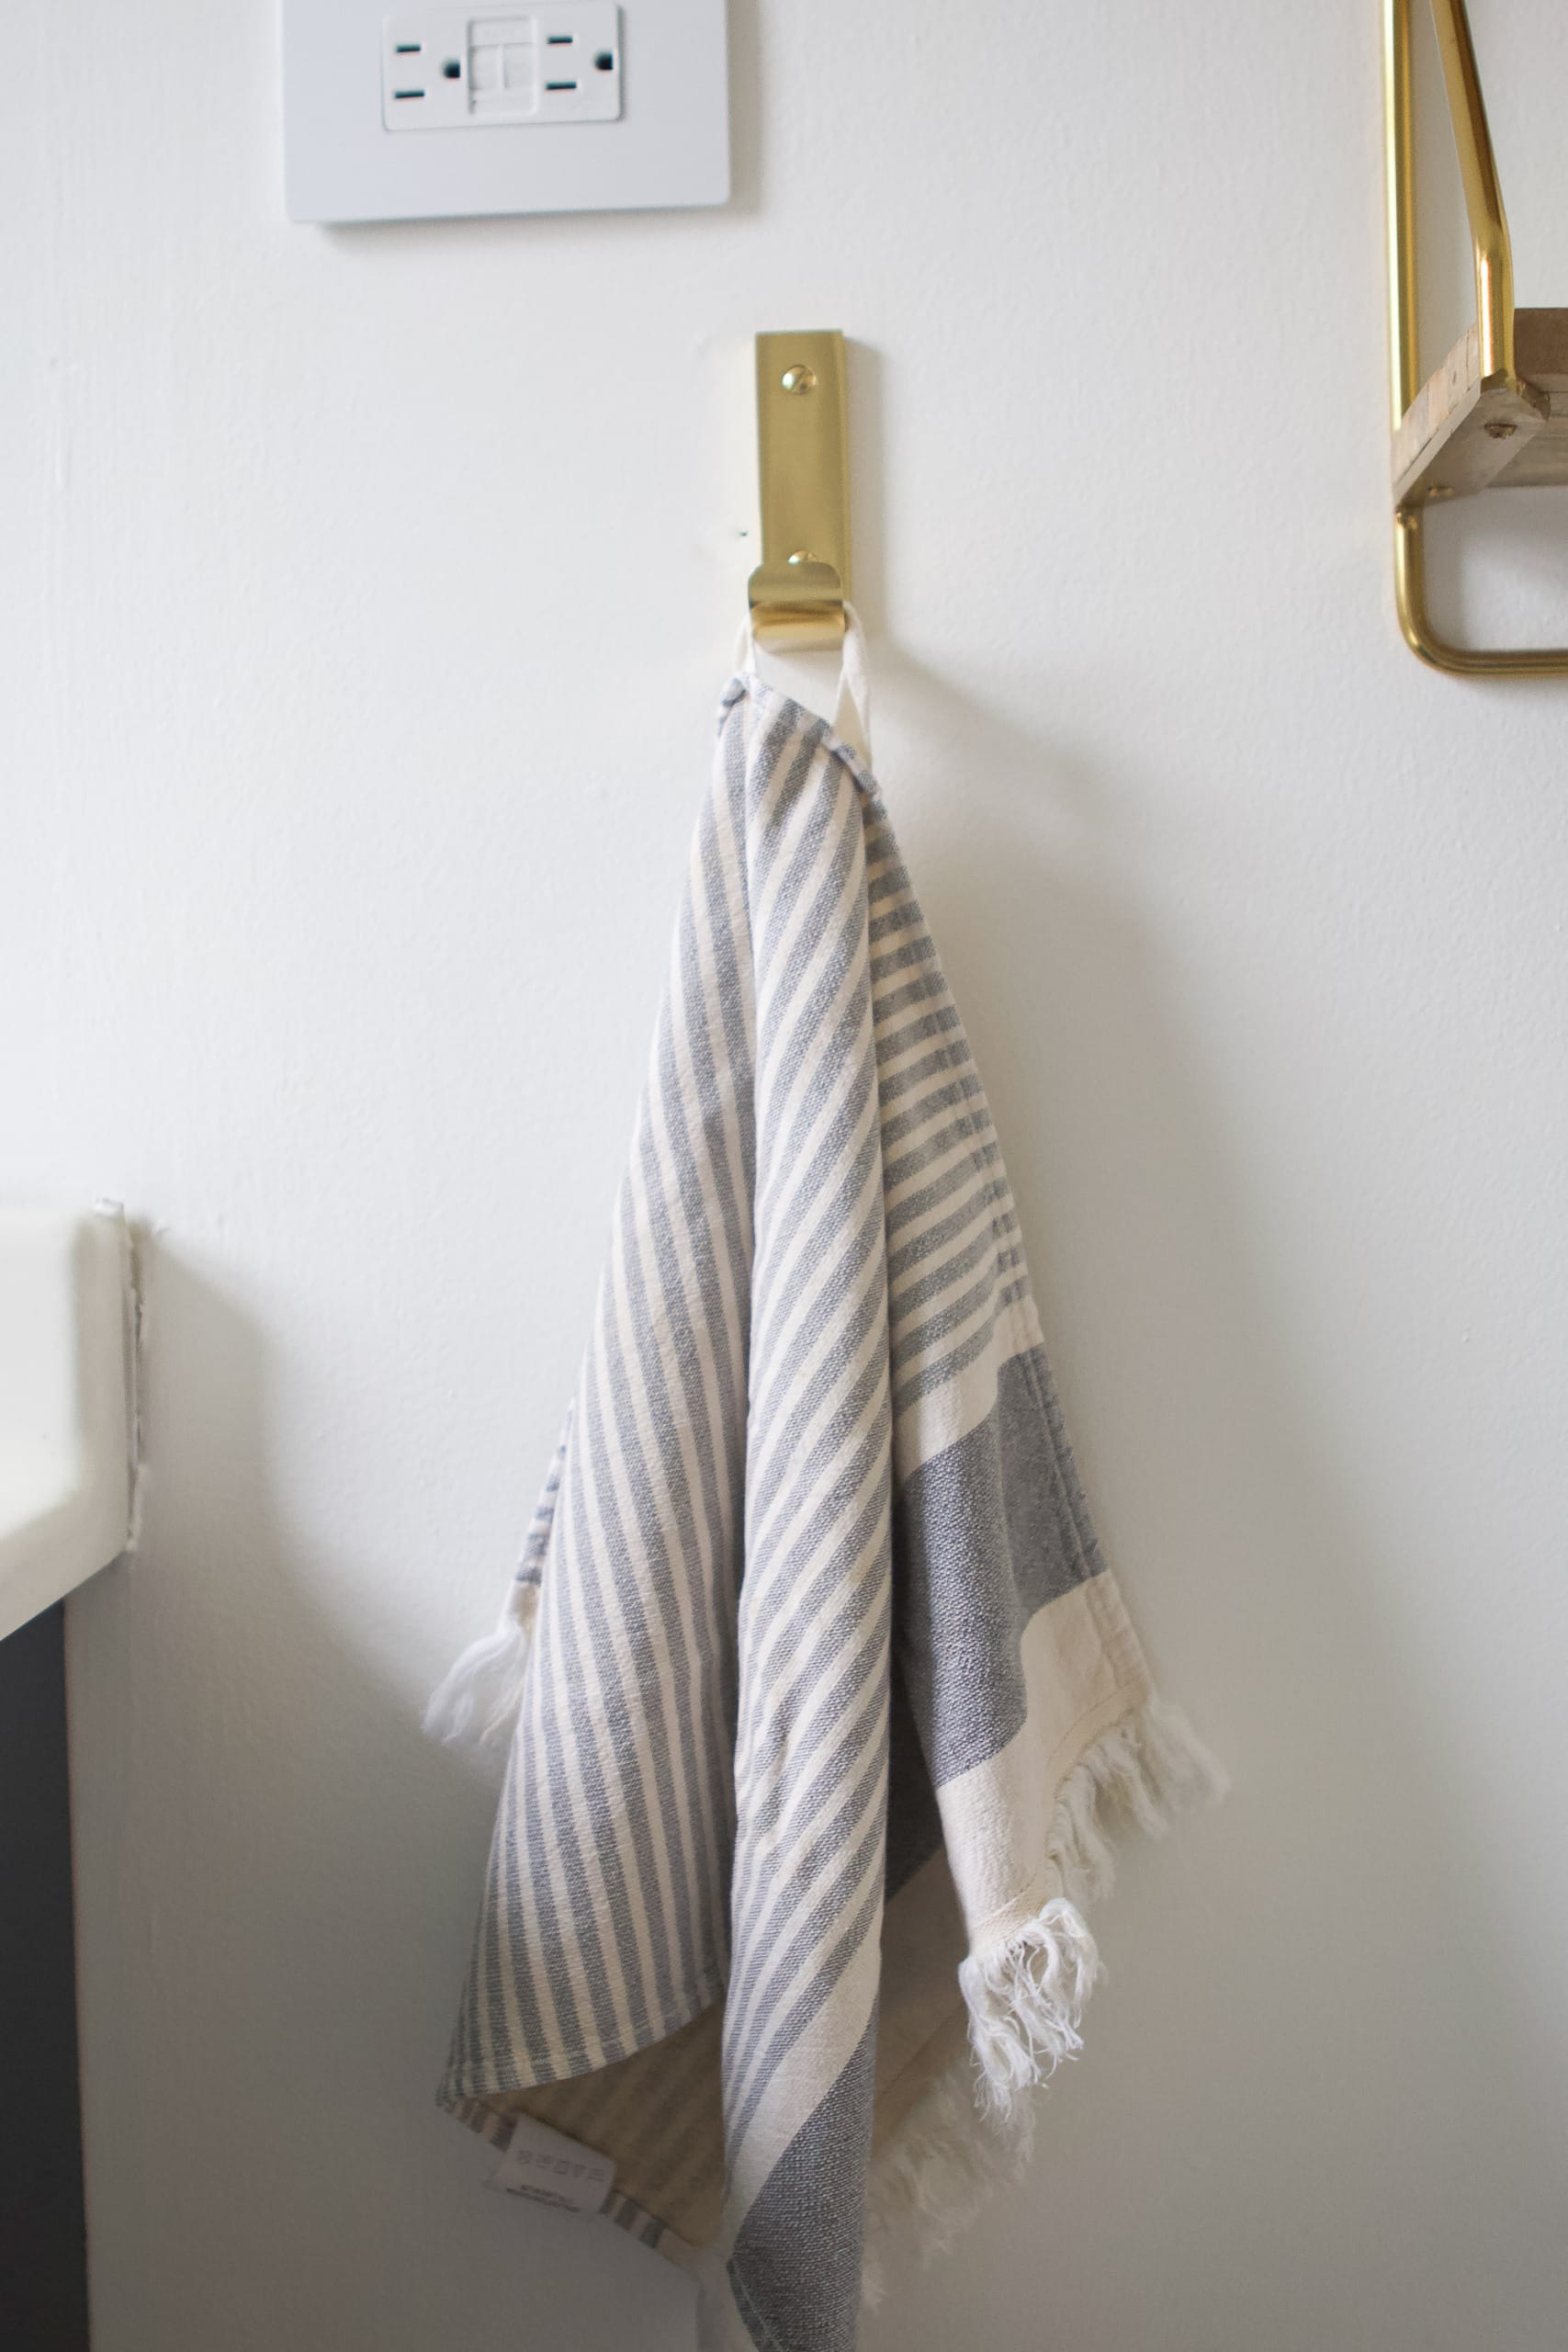 Brass hand towel hook